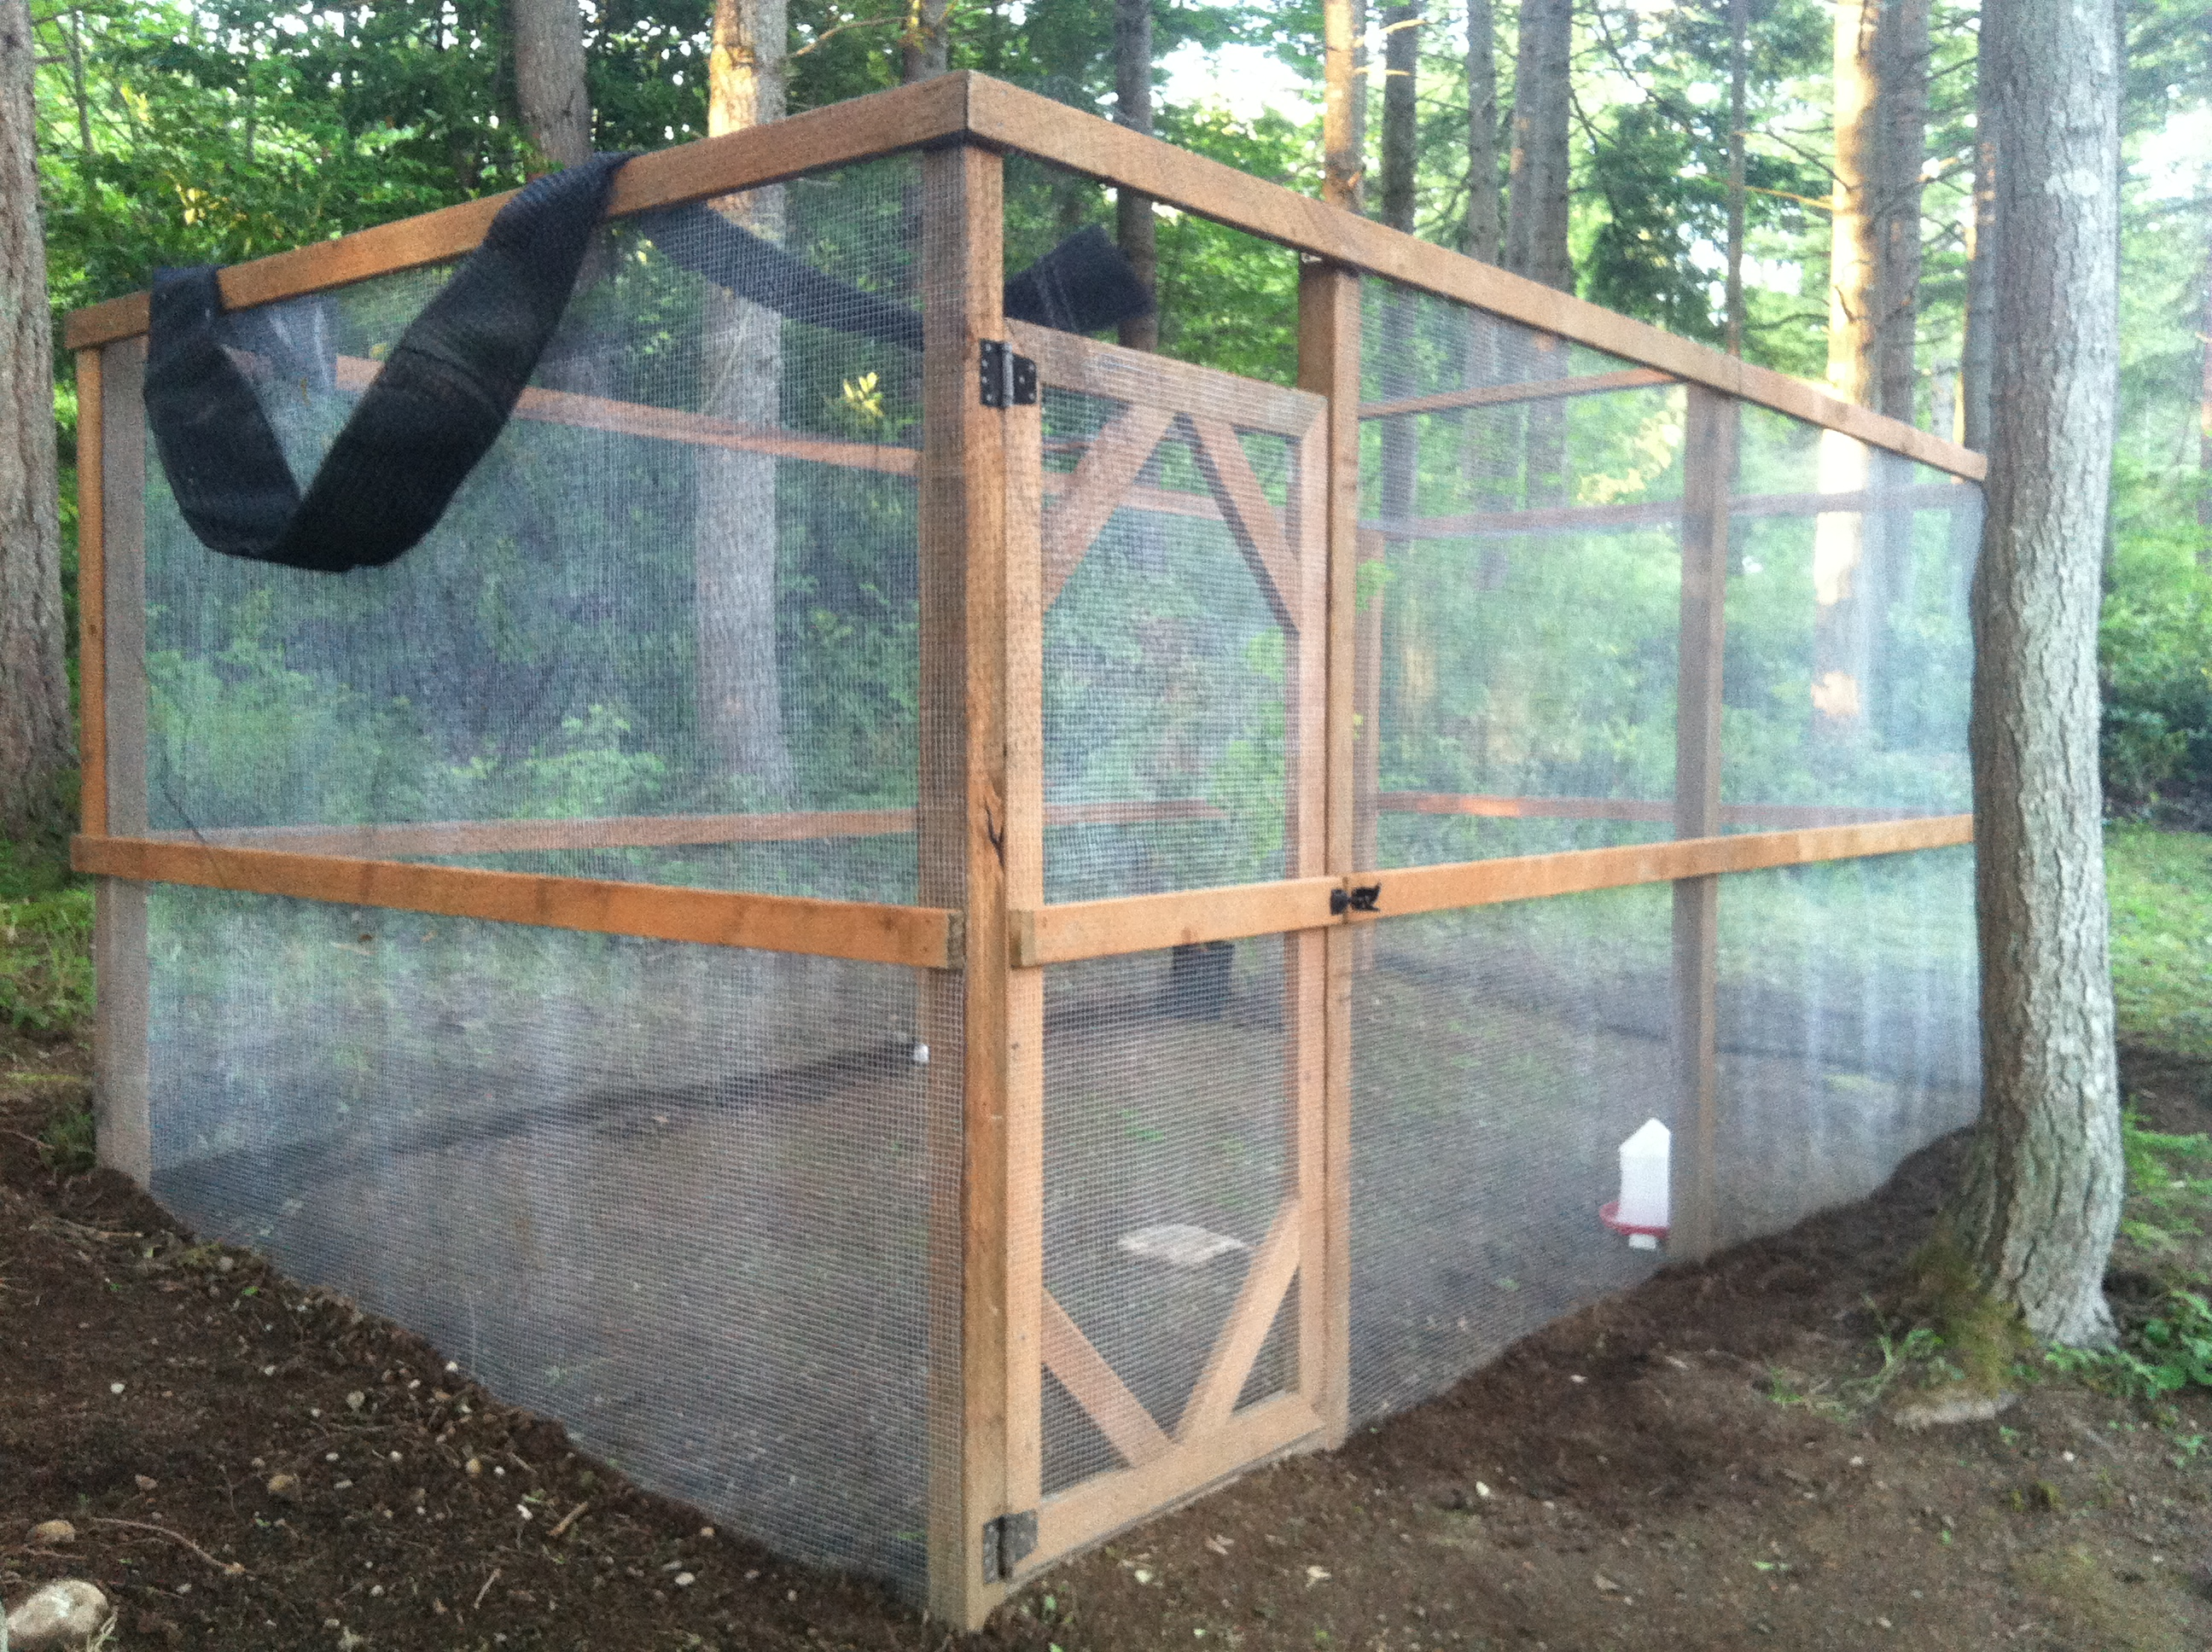 Cooper sloan developer seattle wa aviculture for Building a quail house